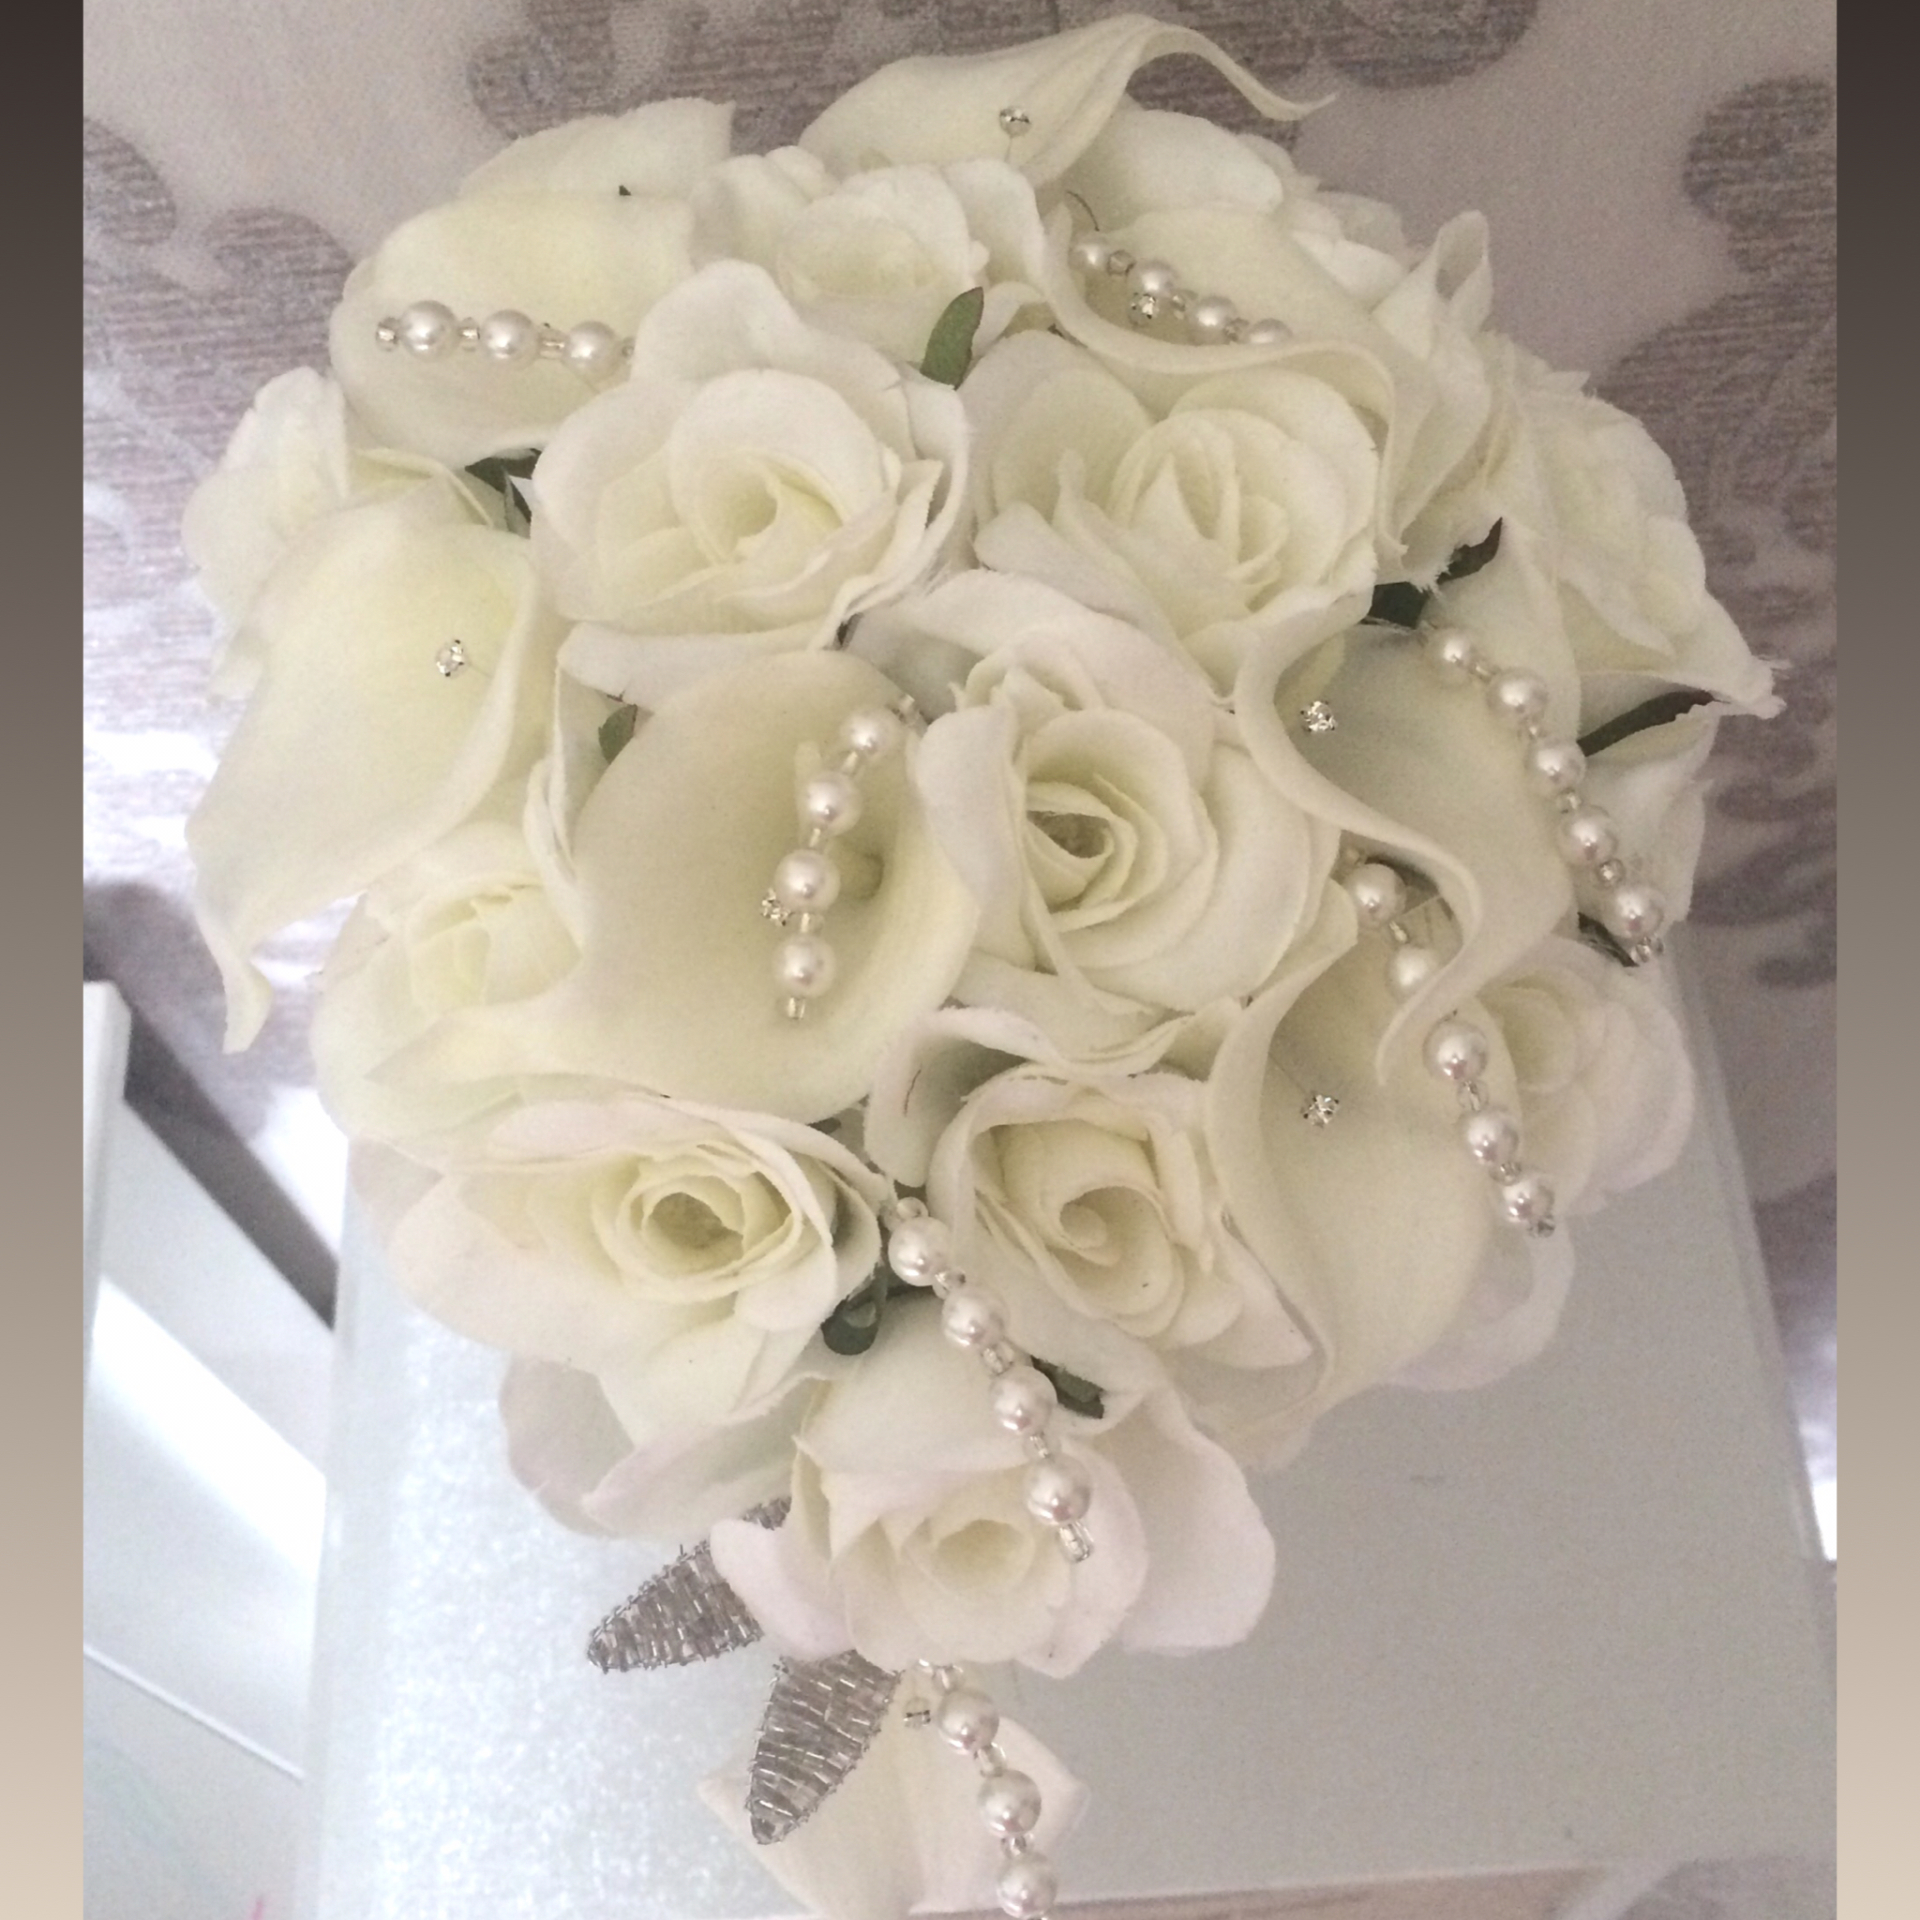 Pale Ivory Calla lily & Rose Teardrop Bride Bouquet With Pearl & Diamante touches